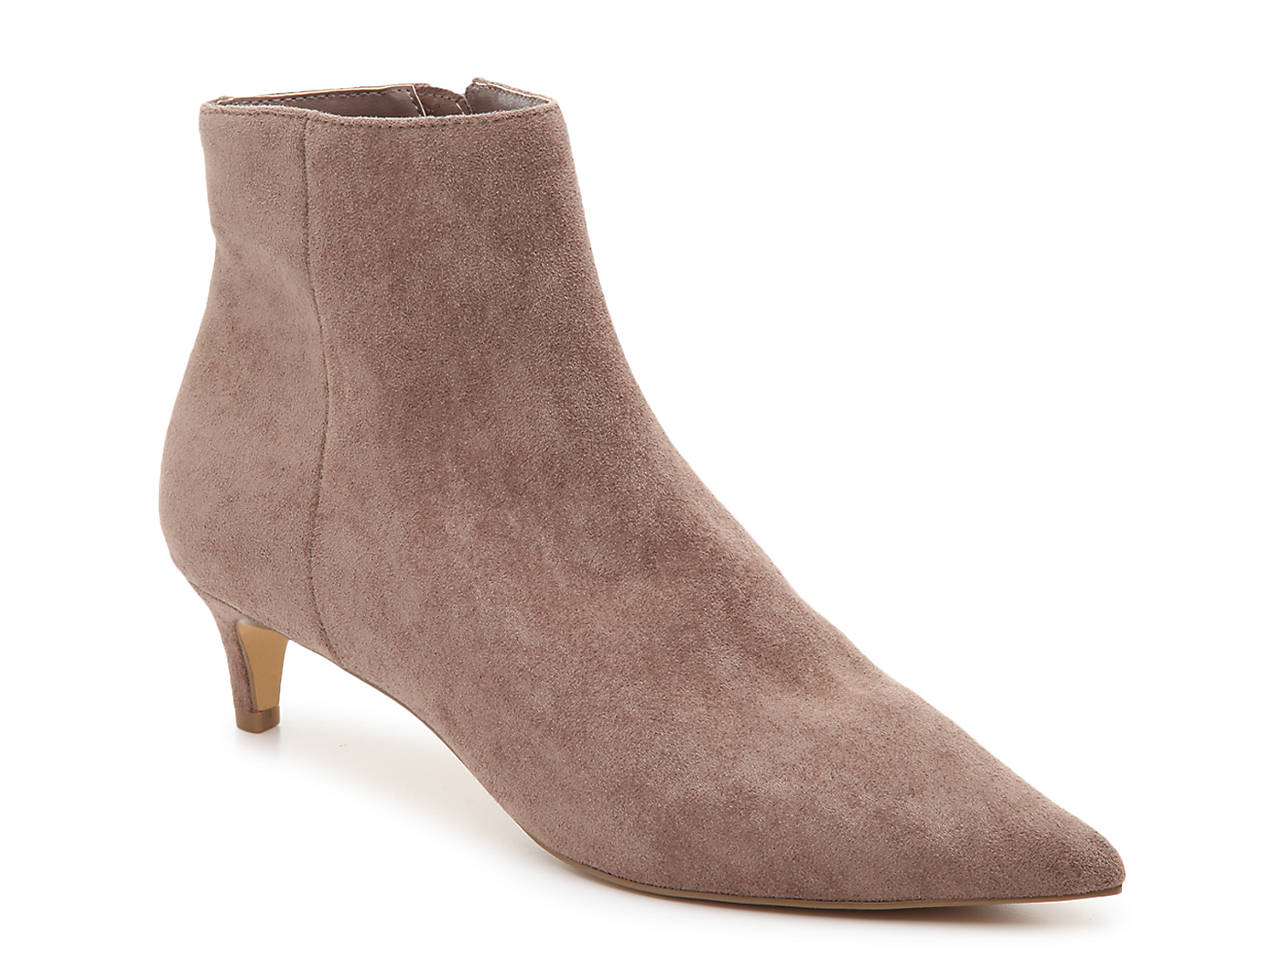 Charles David by Charles David Charles Kannon Bootie Damens's Schuhes   DSW 5d35ca